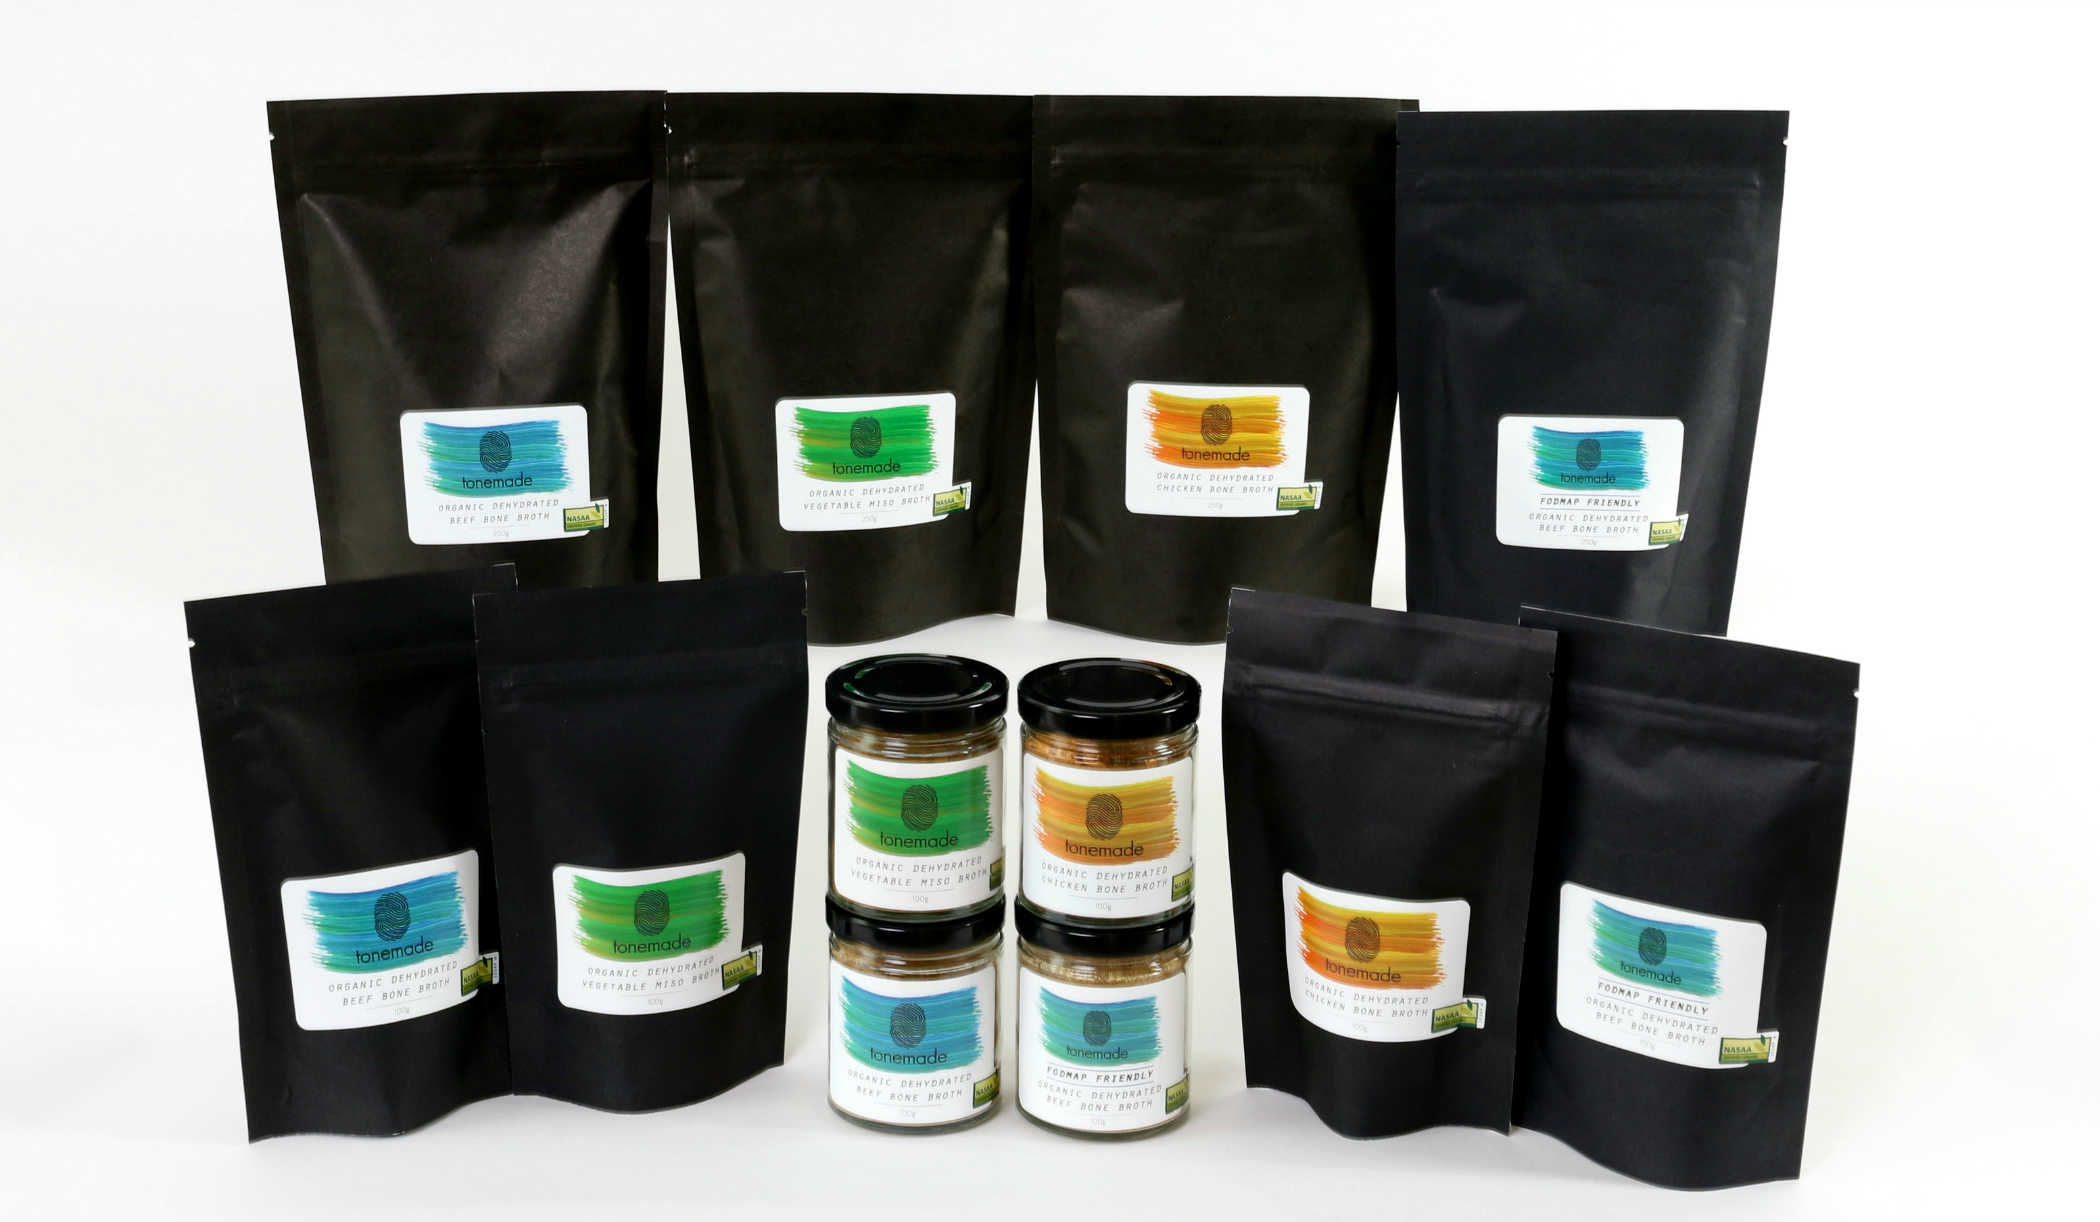 TONEMADE Bone Broth All Products.jpg